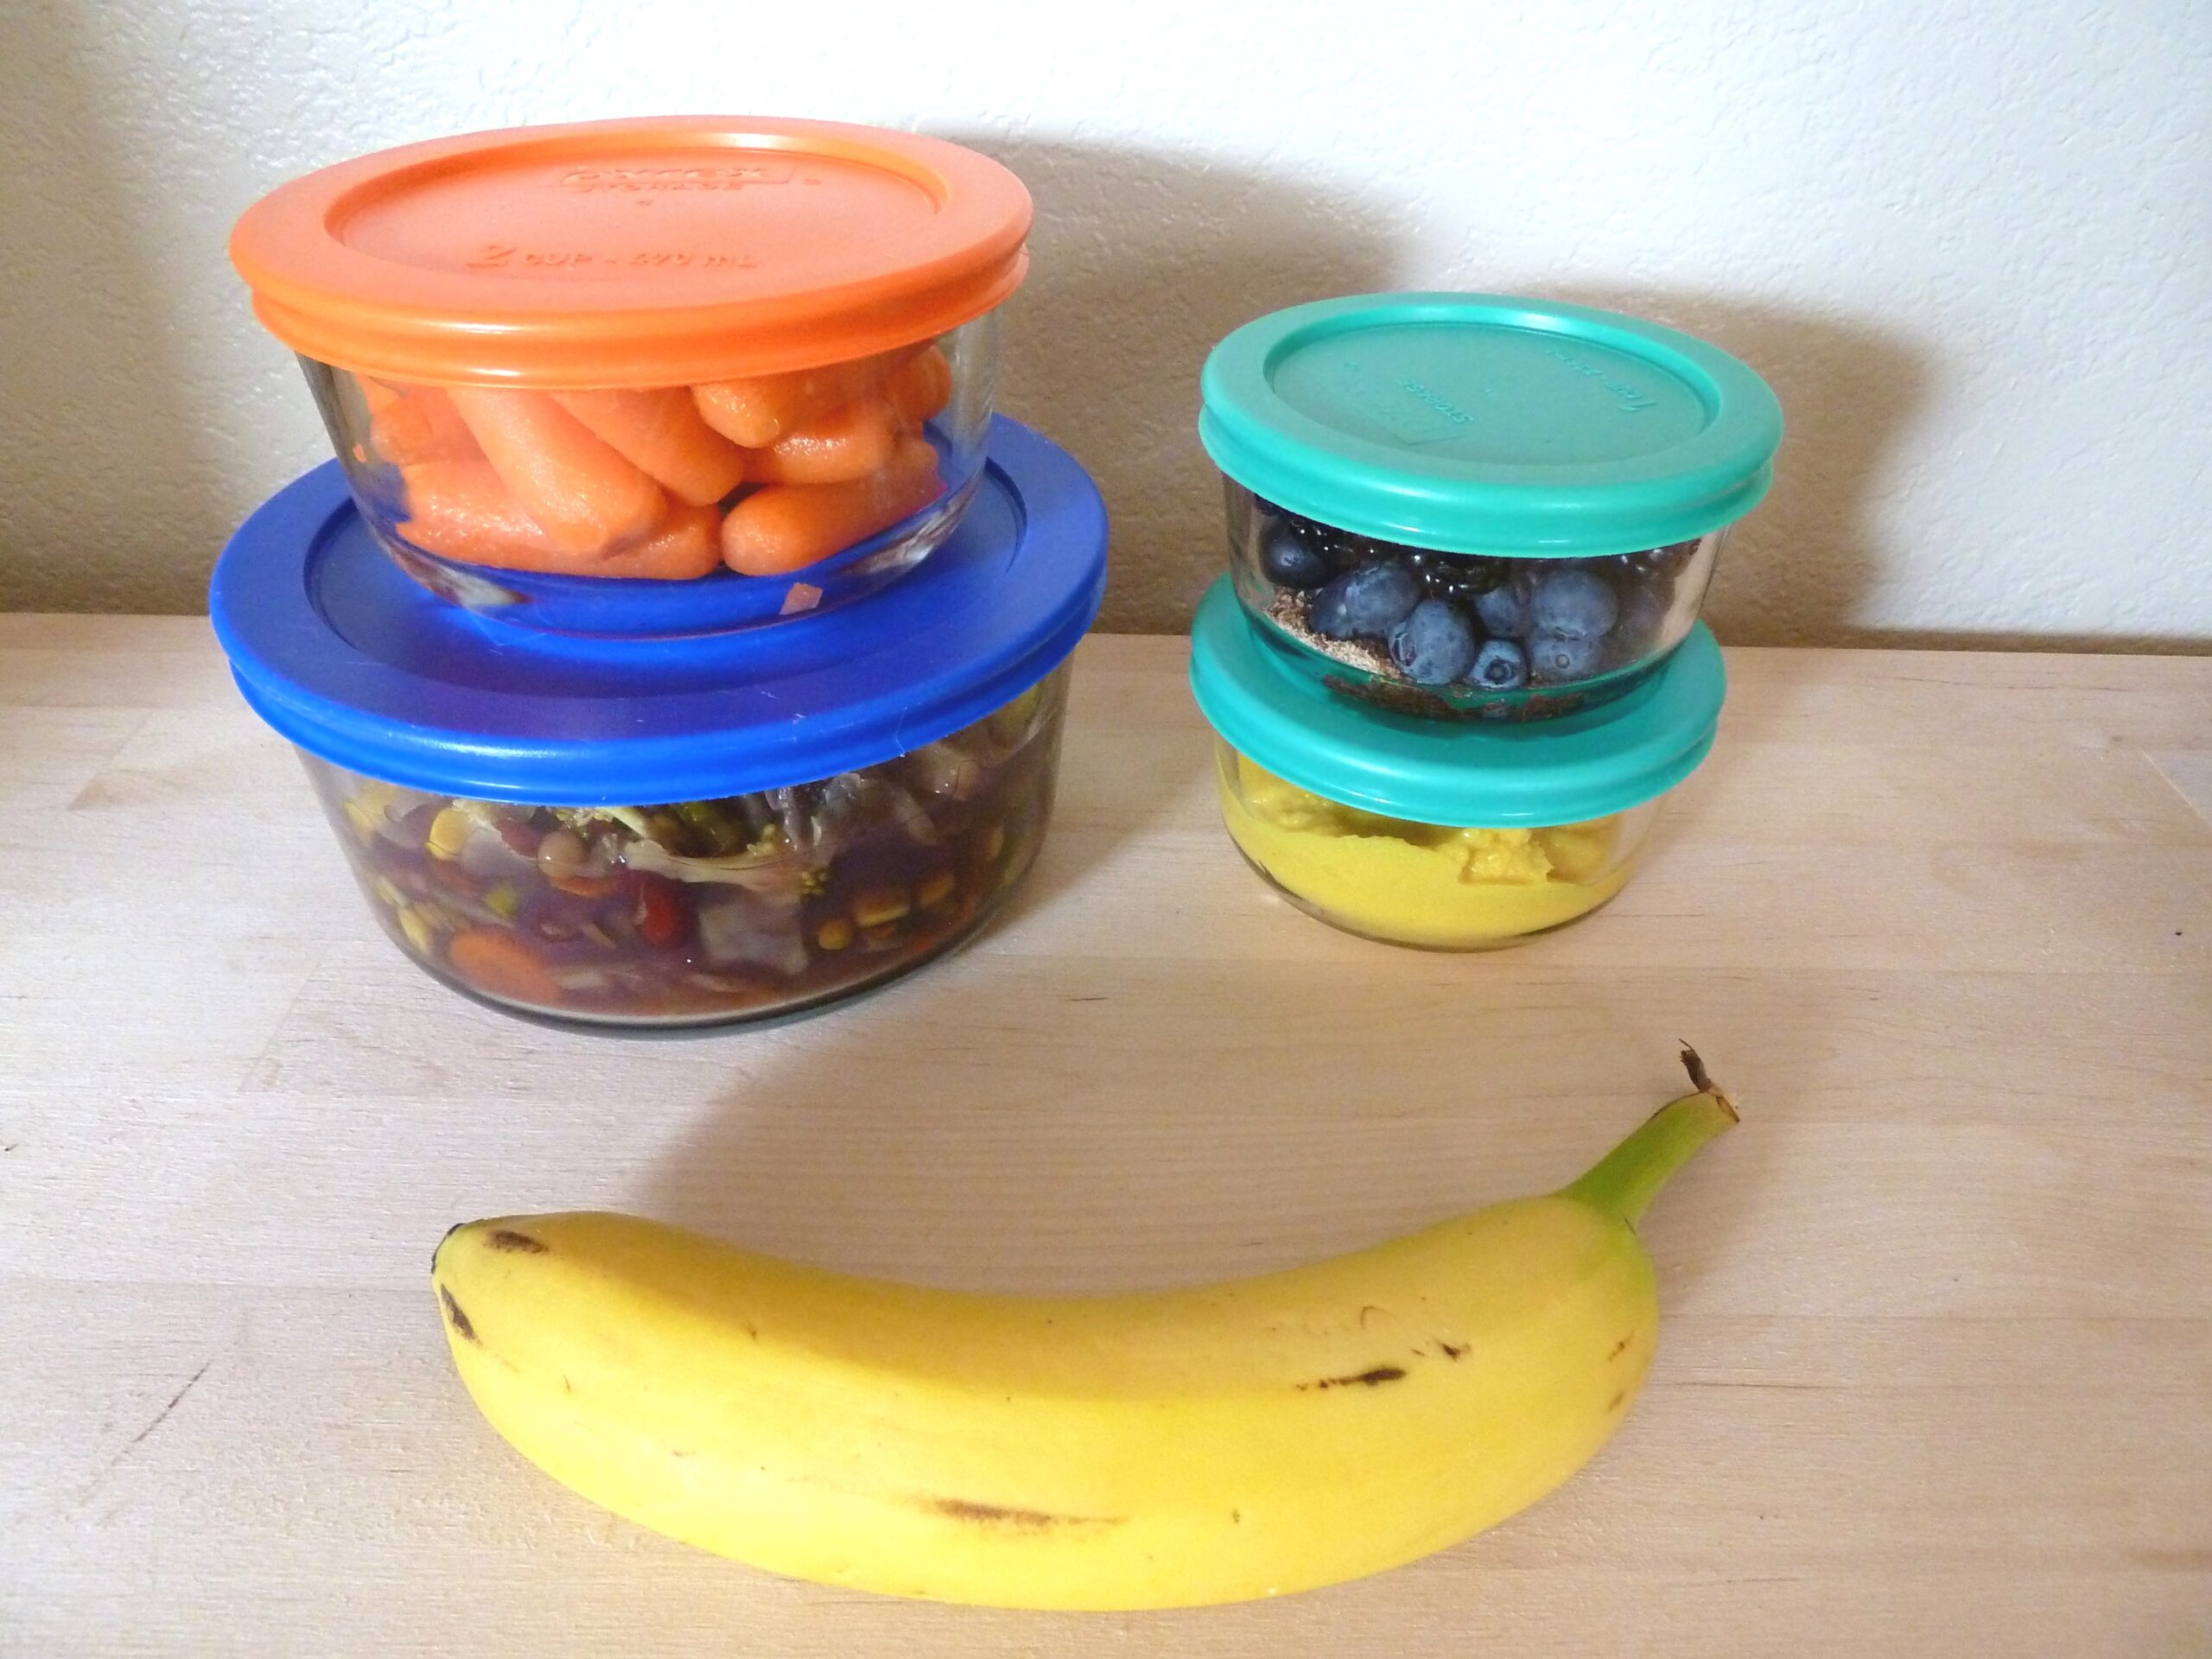 containers of food and a banana